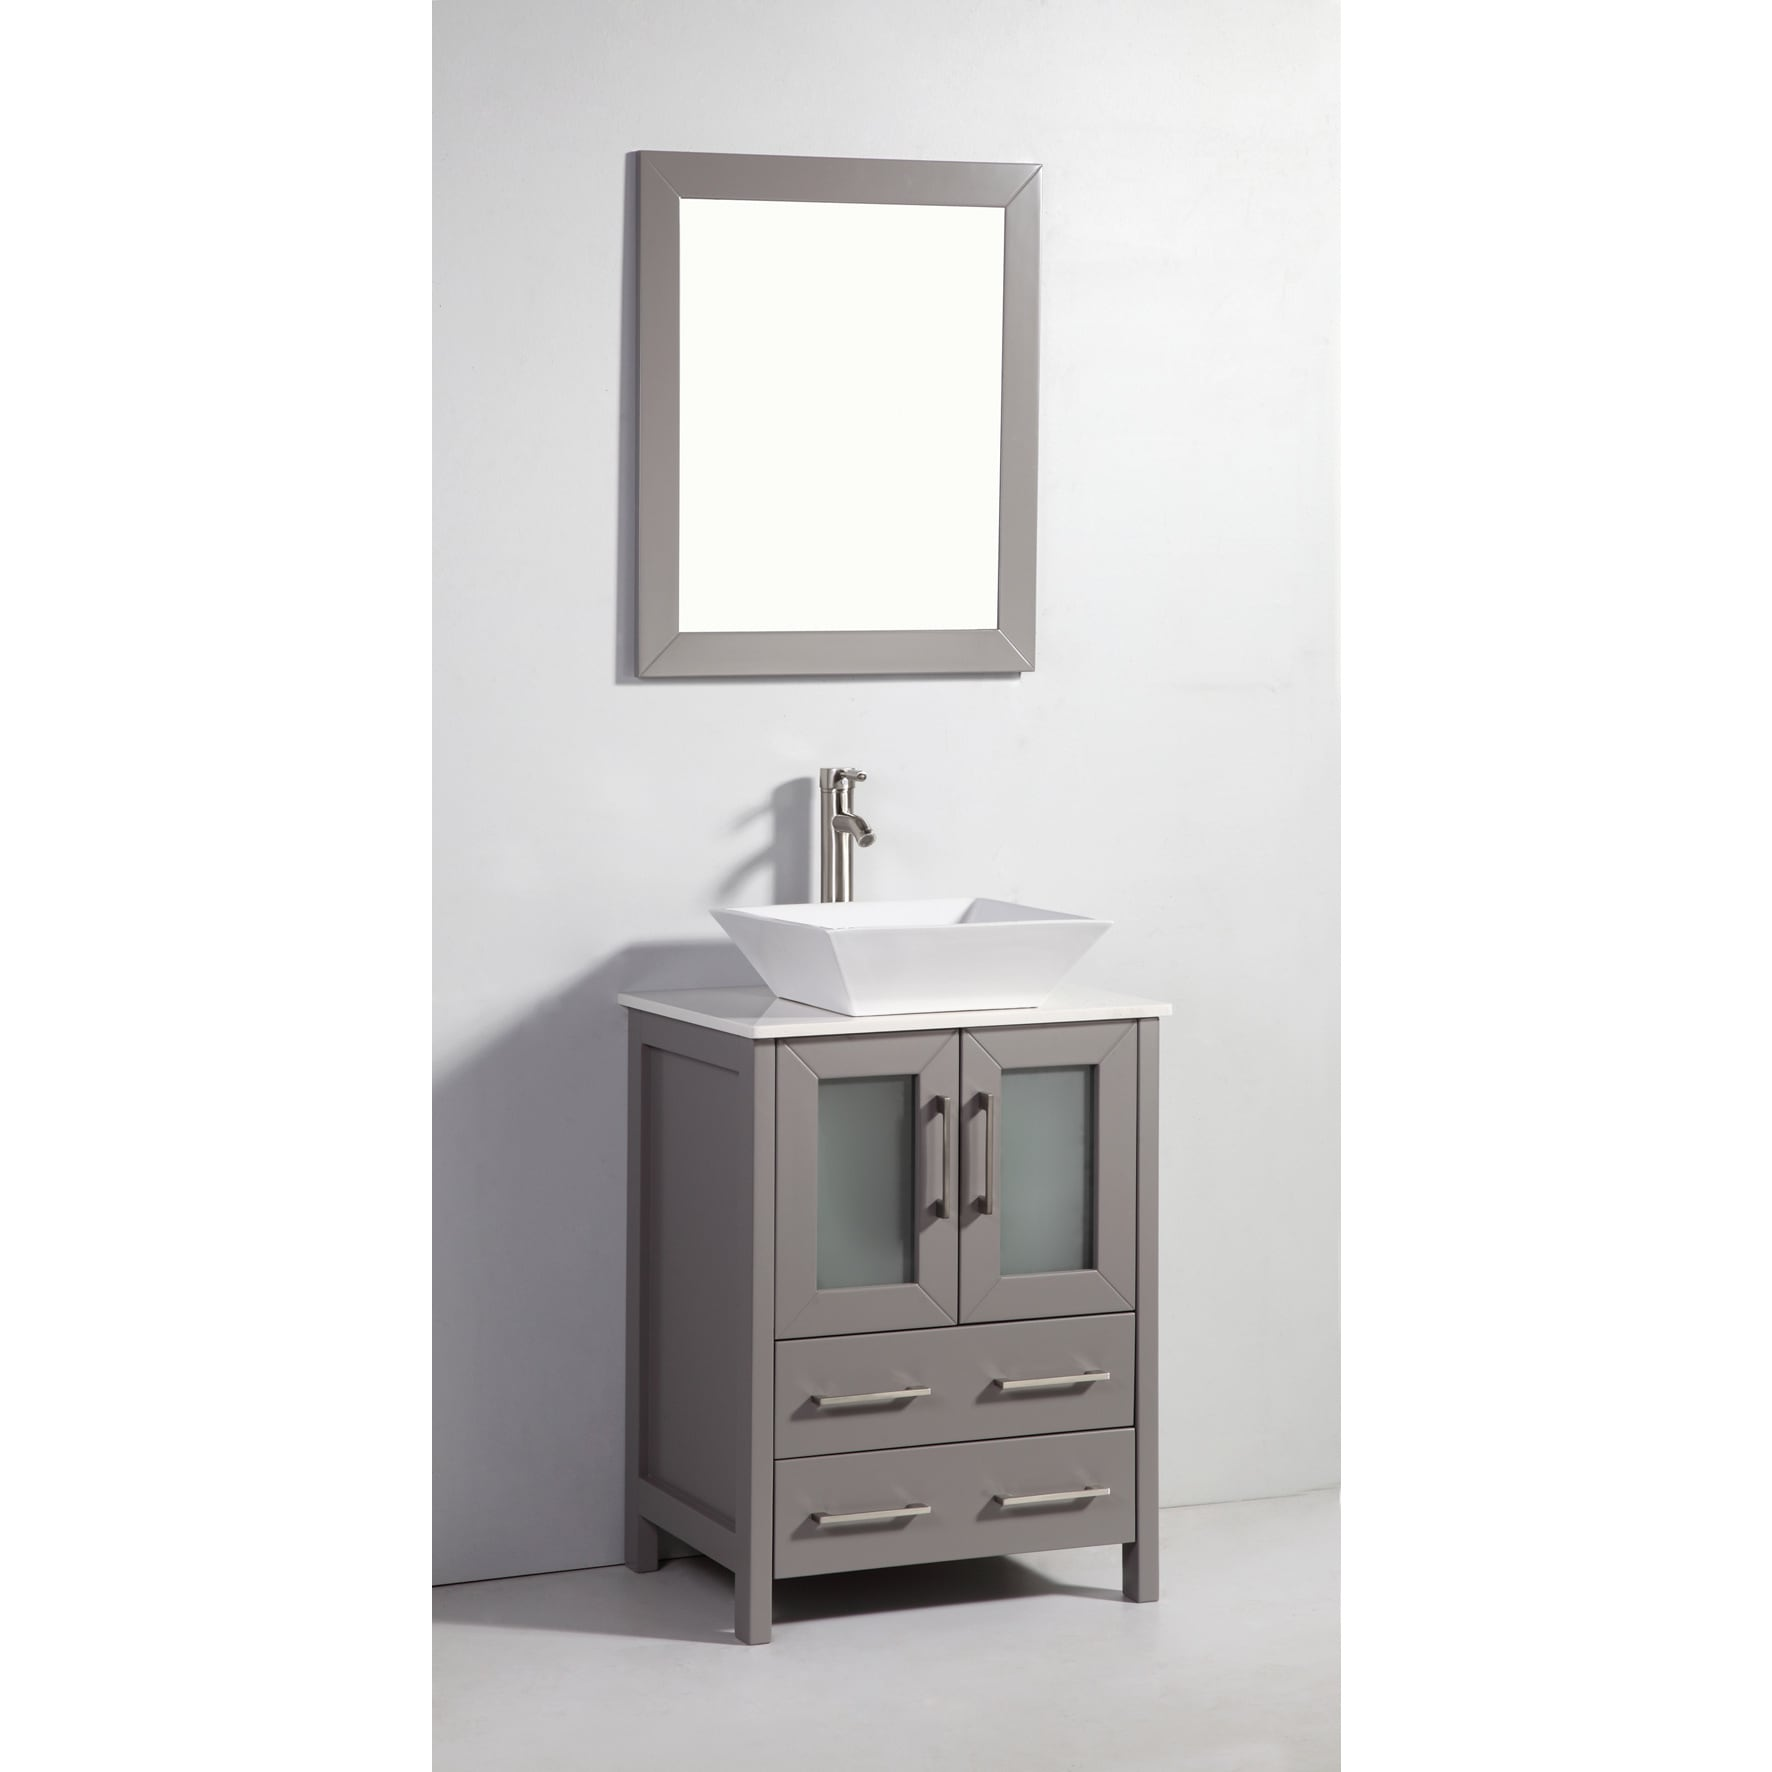 Shop Vanity Art 24 Inch Single Sink Bathroom Vanity Set With Ceramic Top    On Sale   Free Shipping Today   Overstock.com   13681646